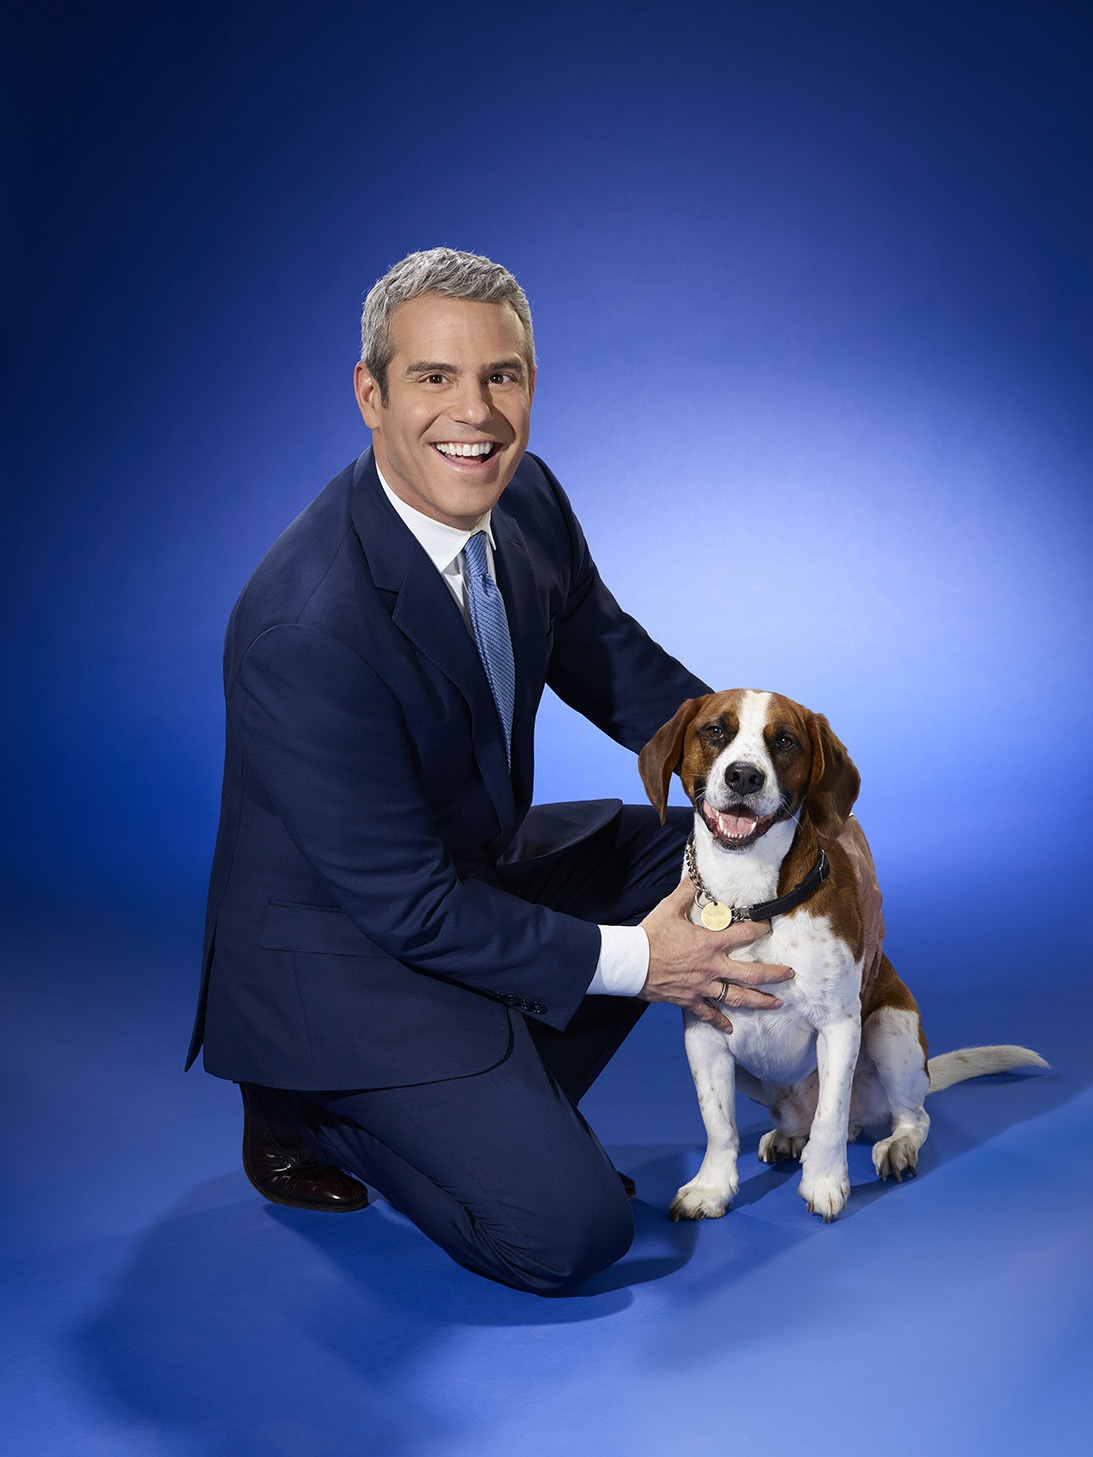 TV Host, Andy Cohen and his dog Wacha, launch the Dog Days of Summer adoption event at Residence Inn by Marriott Central Park (NYC)